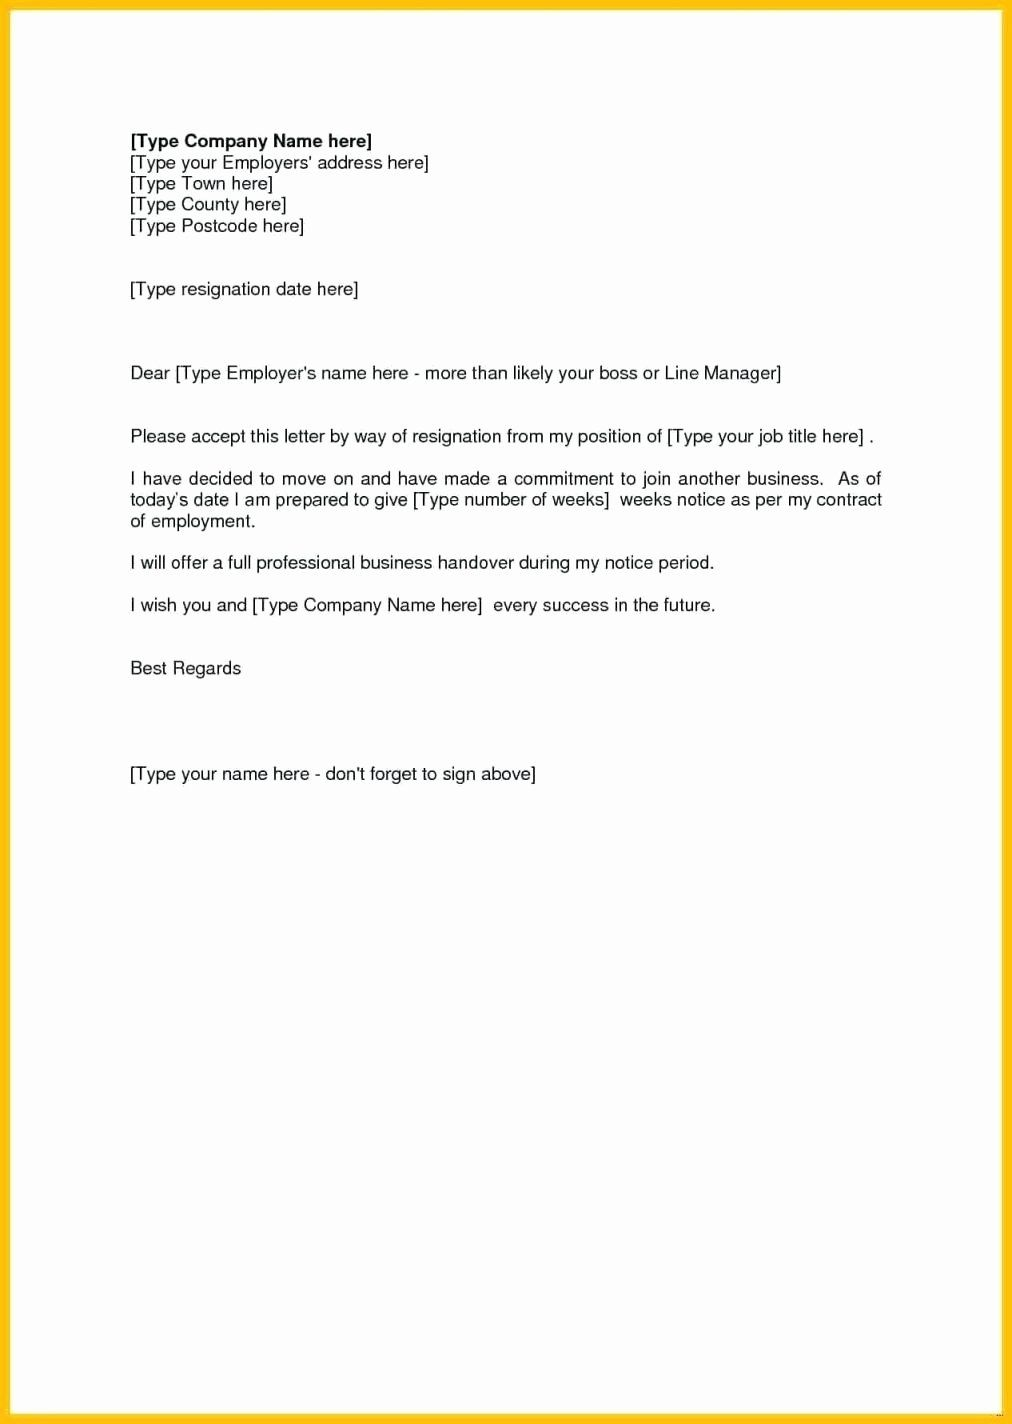 Letter Of Commitment Template Unique 15 Job Mitment Letter Sample Resignation Letter Resignation Letter Format Resume Cover Letter Template Letter of commitment for employment